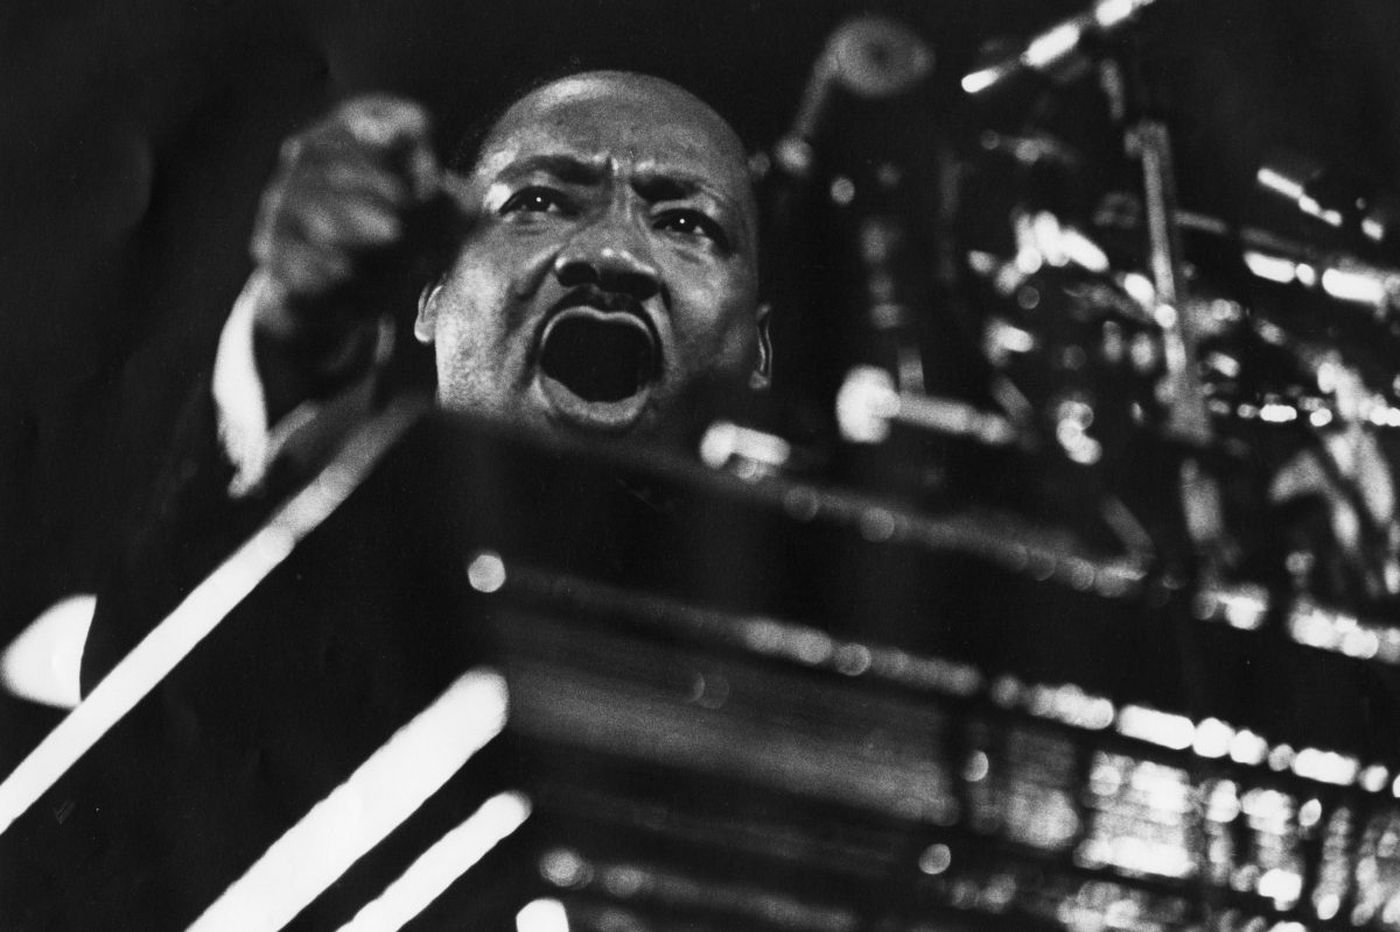 Secret letter to Martin Luther King Jr. sheds light on FBI's malice